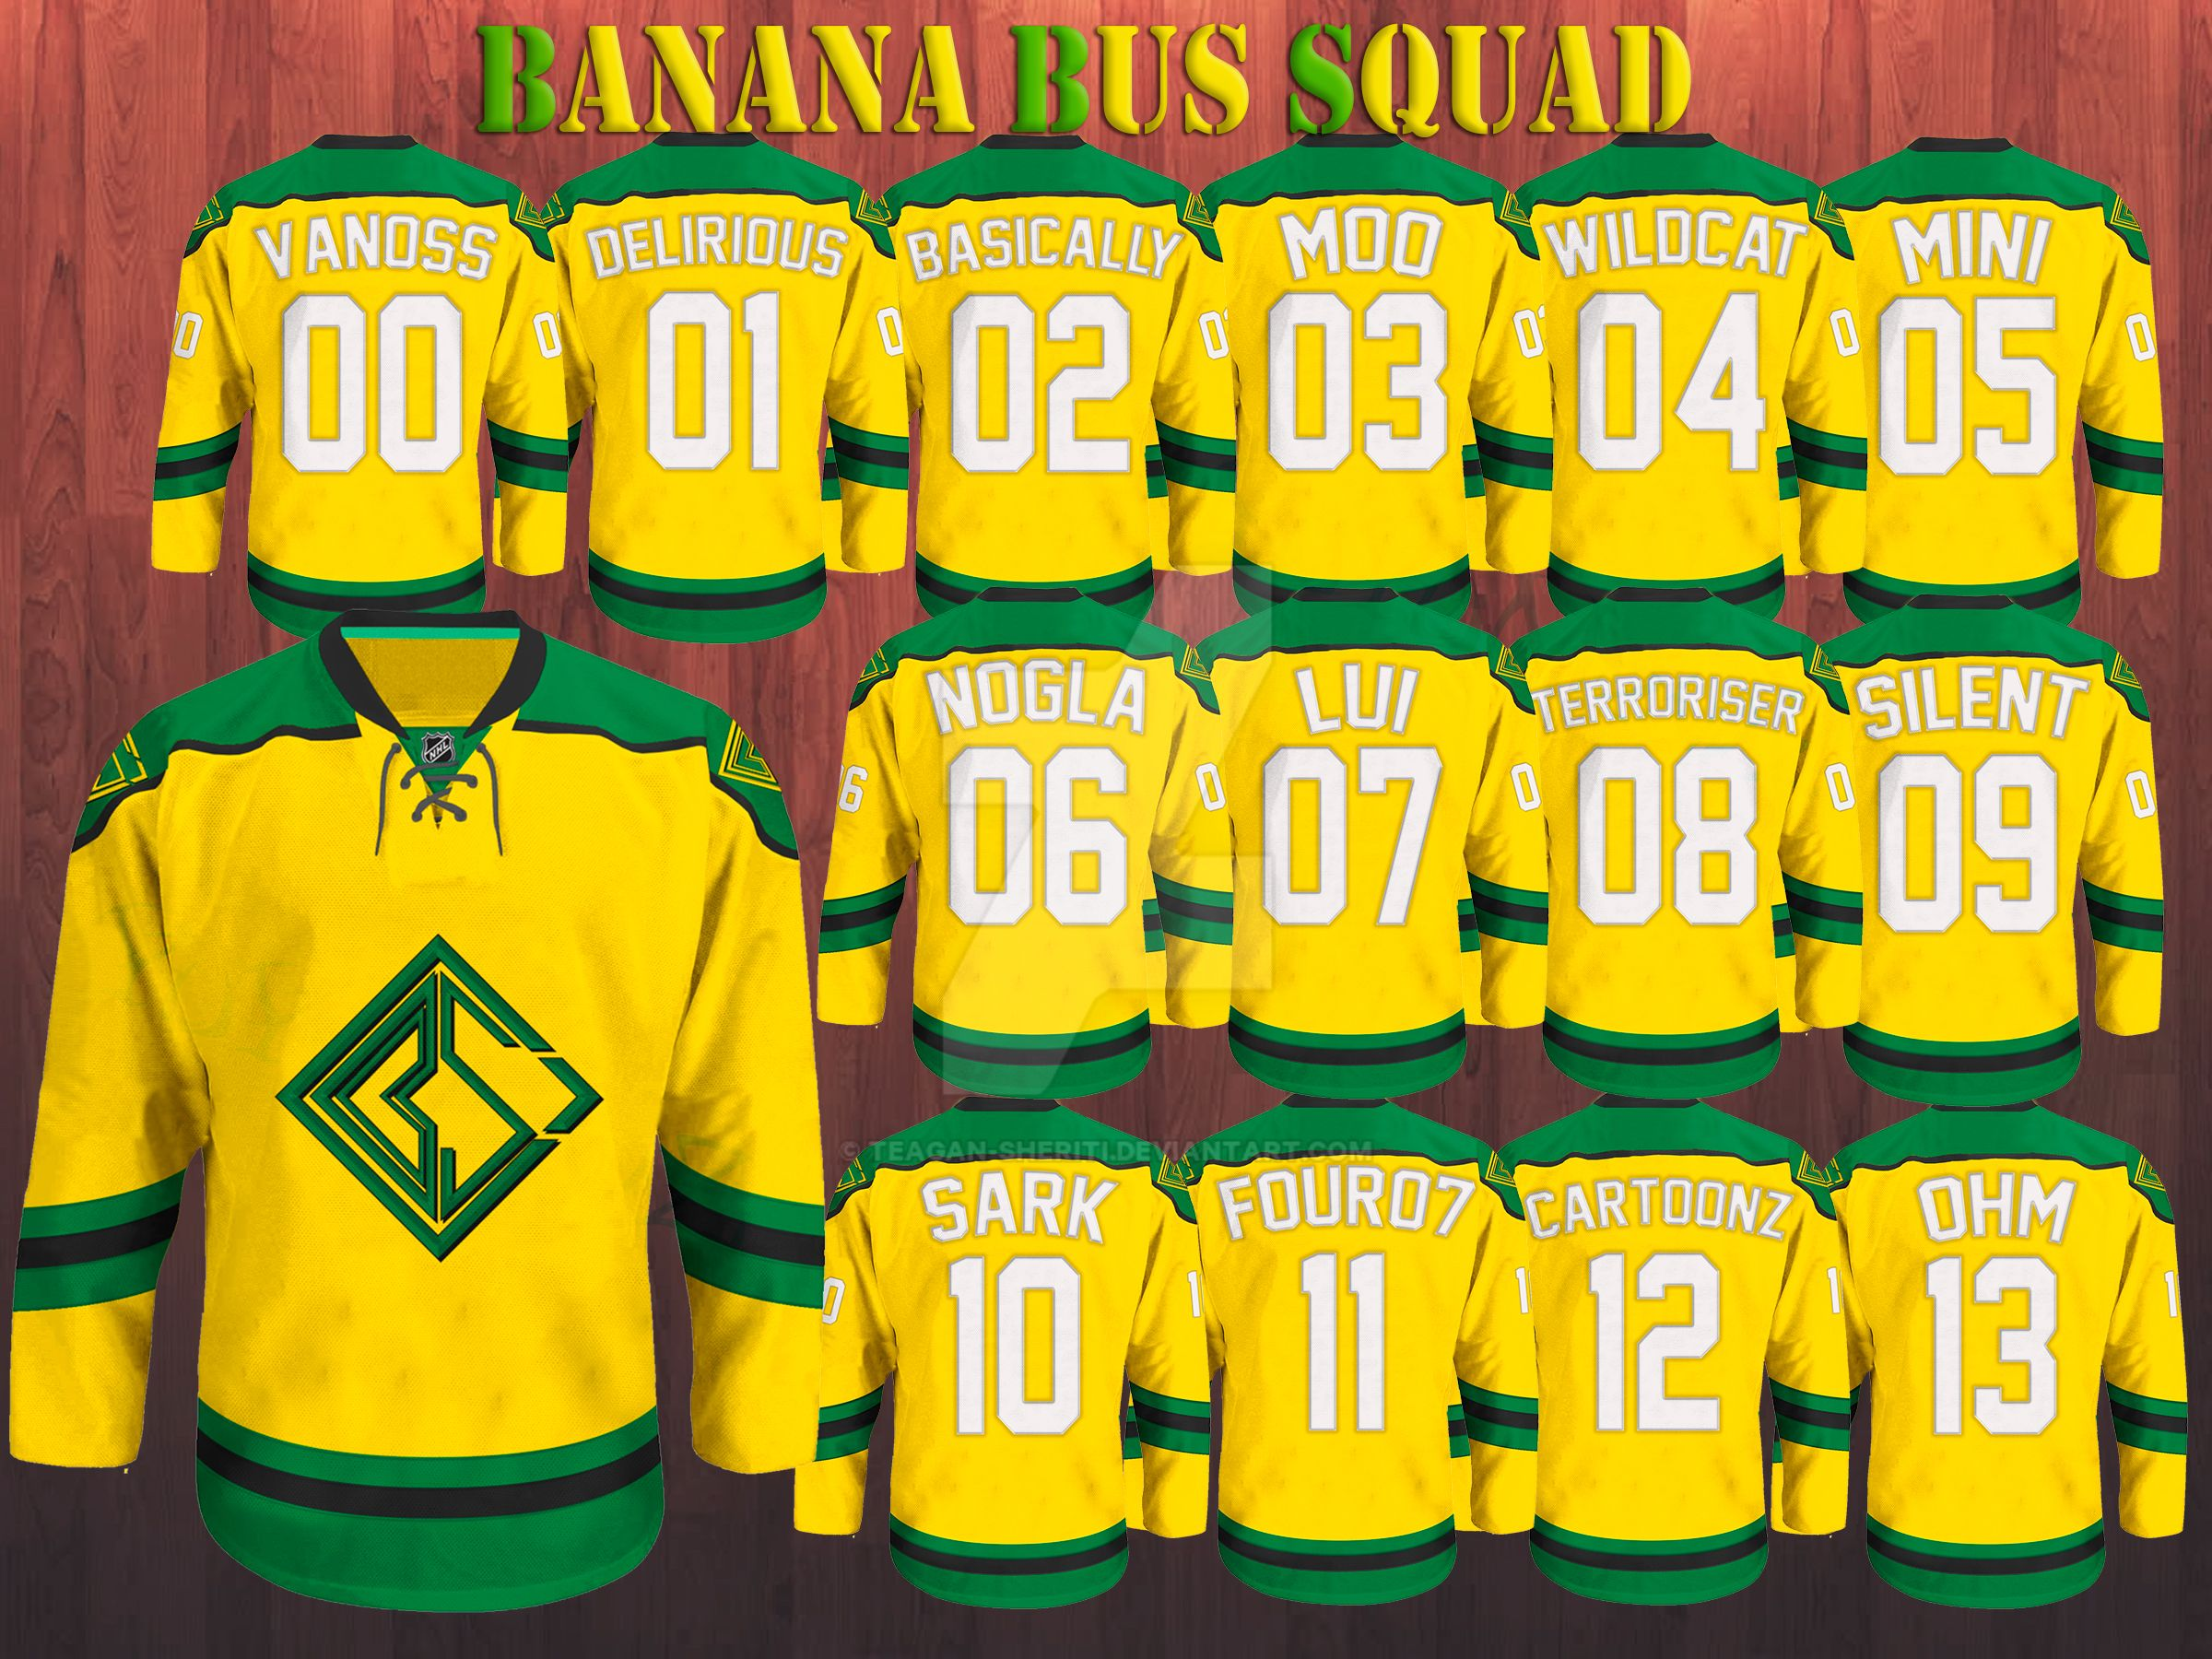 NHL Banana Bus Squad Jersey by Teagan-Sheriti on DeviantArt H20 Delirious